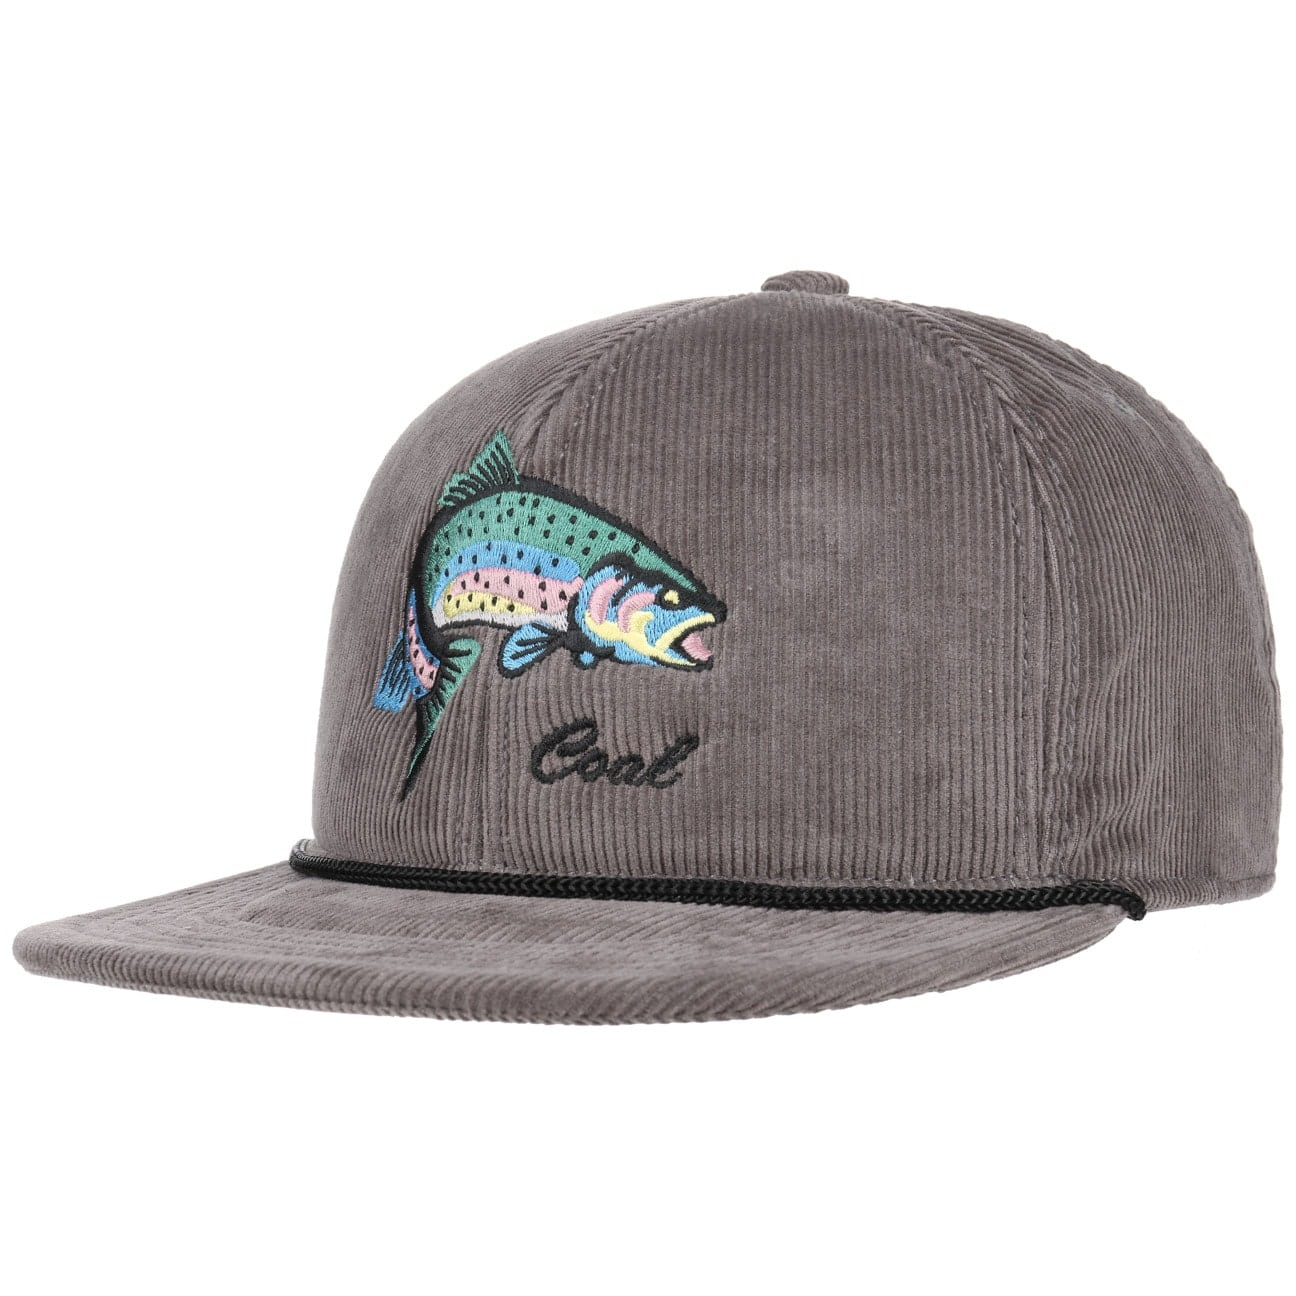 Gorra de Pana The Wilderness by Coal  gorra de algod?n